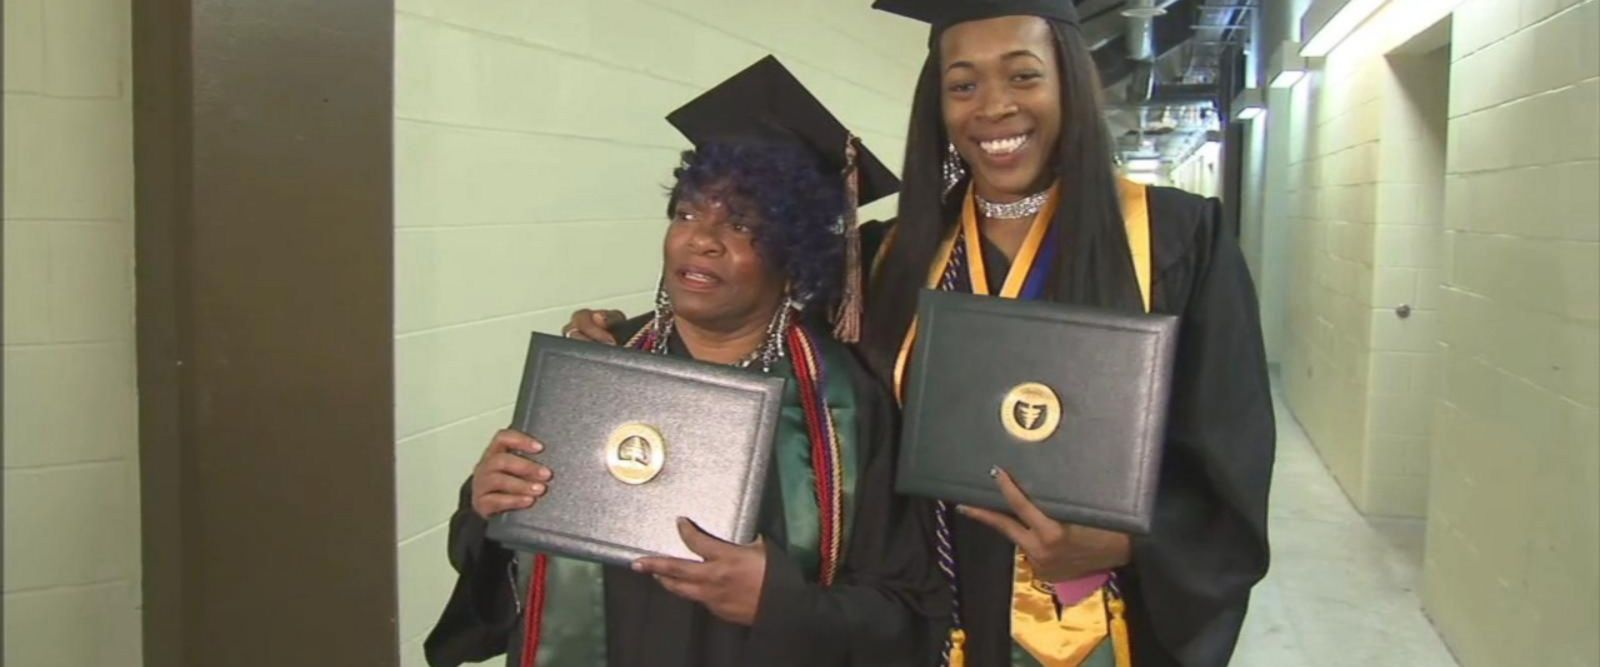 VIDEO: Grandmother and her granddaughter graduate college together